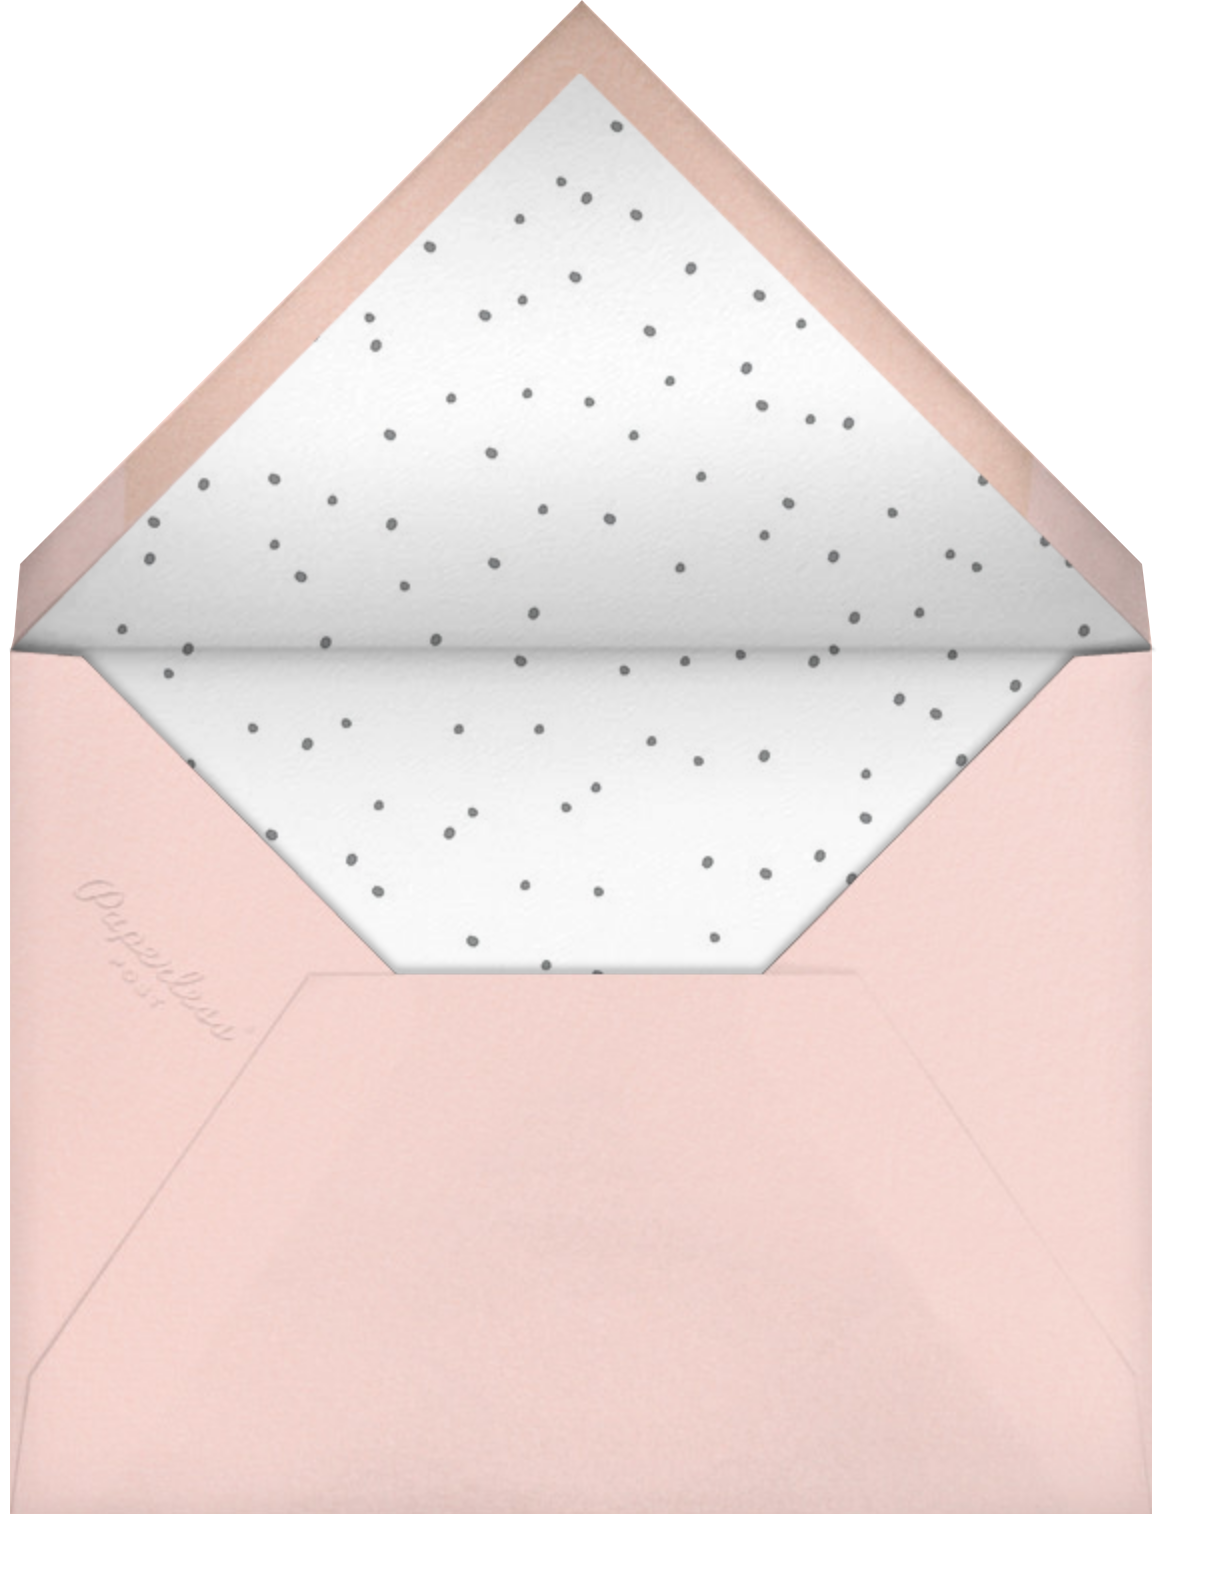 With Hugs and Kisses (Double-Sided) - Slate - Linda and Harriett - Anniversary party - envelope back